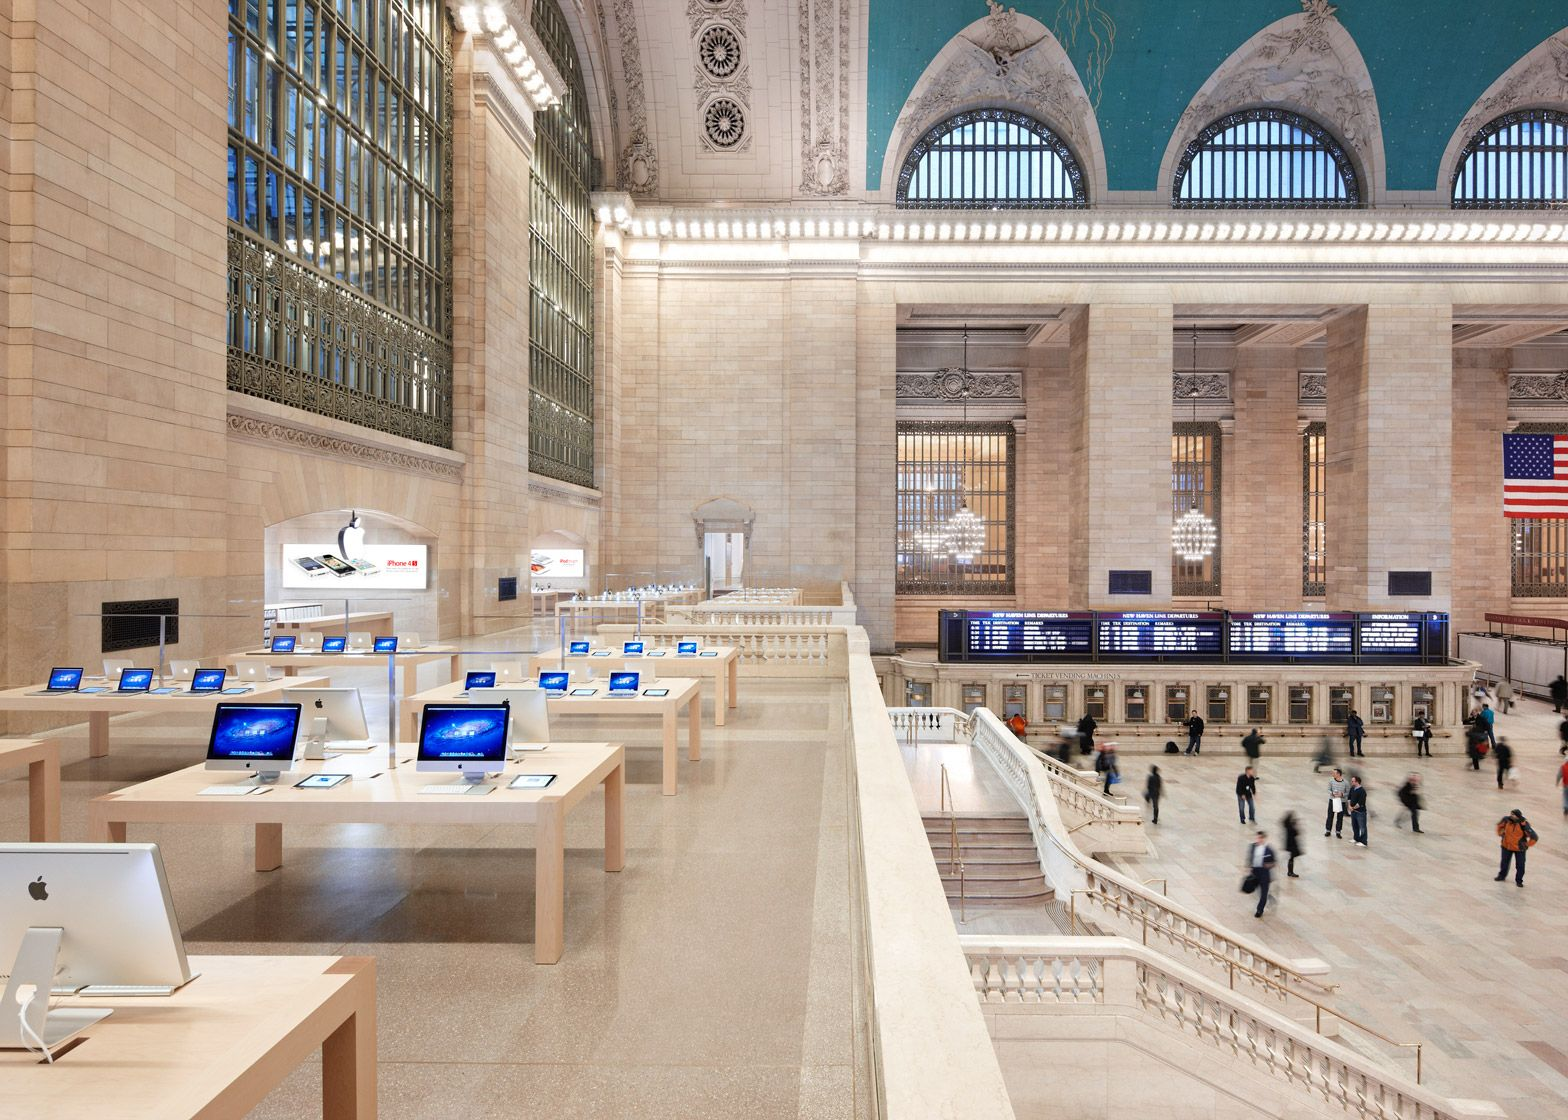 The Manhattan Apple Store In Grand Central Station Apple Store Grand Central Apple Retail Store Apple Store